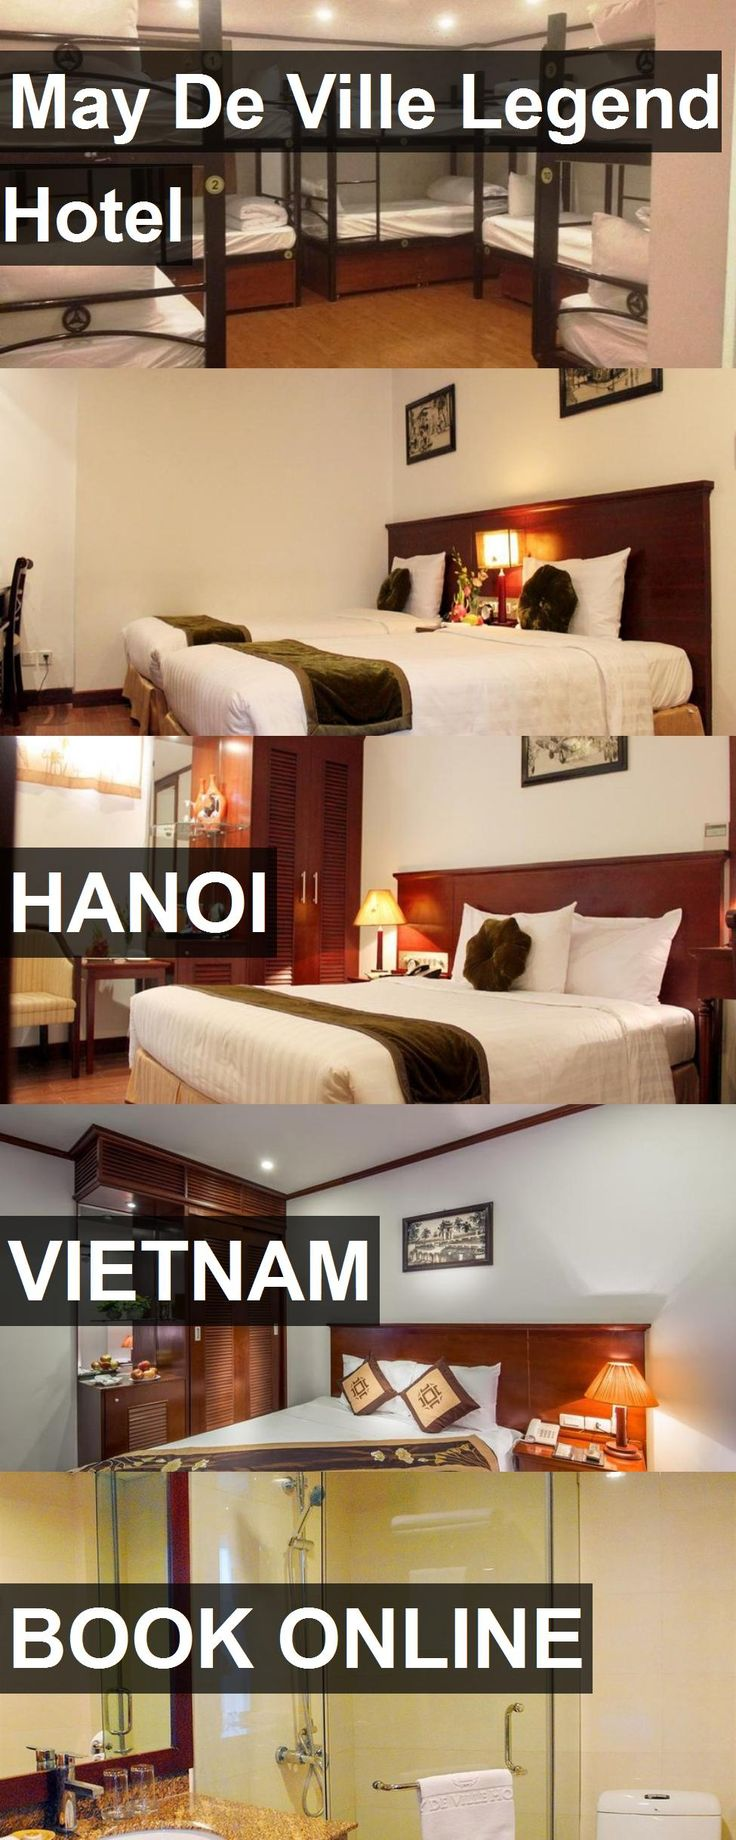 May De Ville Legend Hotel in Hanoi, Vietnam. For more information, photos, reviews and best prices please follow the link. #Vietnam #Hanoi #travel #vacation #hotel